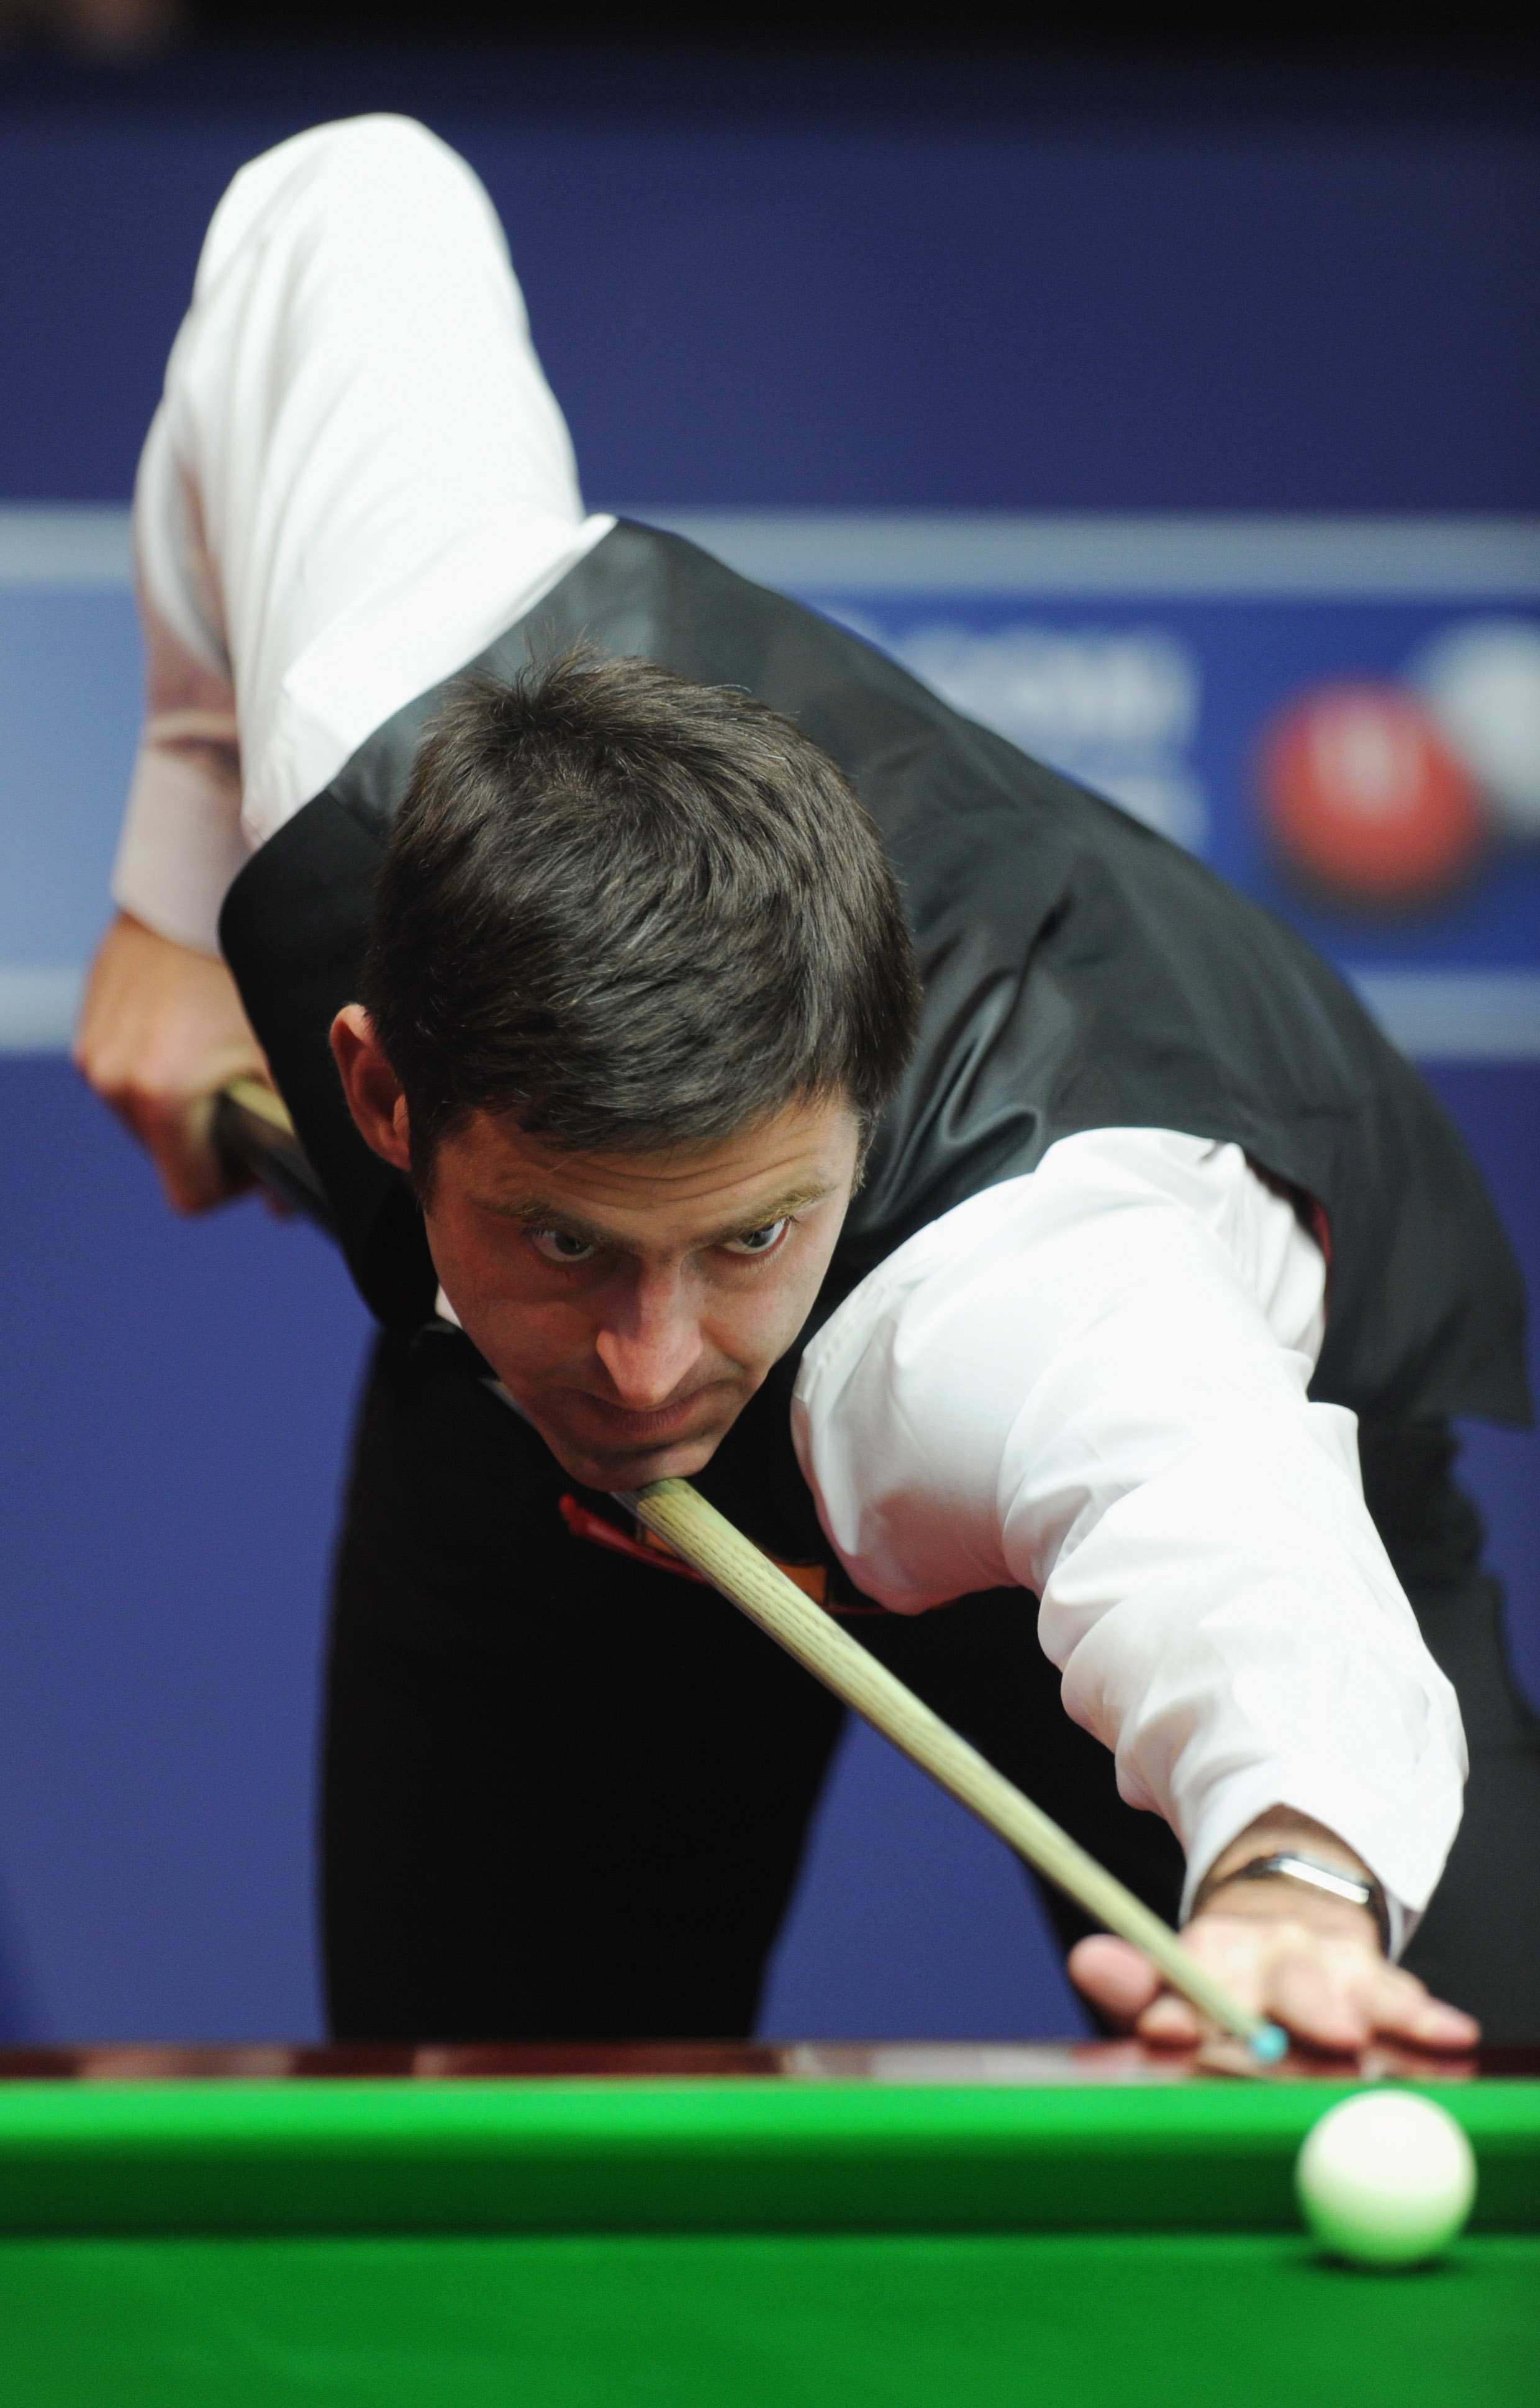 SHEFFIELD, ENGLAND - APRIL 27:  Ronnie O'Sullivan of England plays a shot in his quater-final match against John Higgins of Scotland during day twelve of the Betfred.com World Snooker Championship at the Crucible on April 27, 2011 in Sheffield, England.